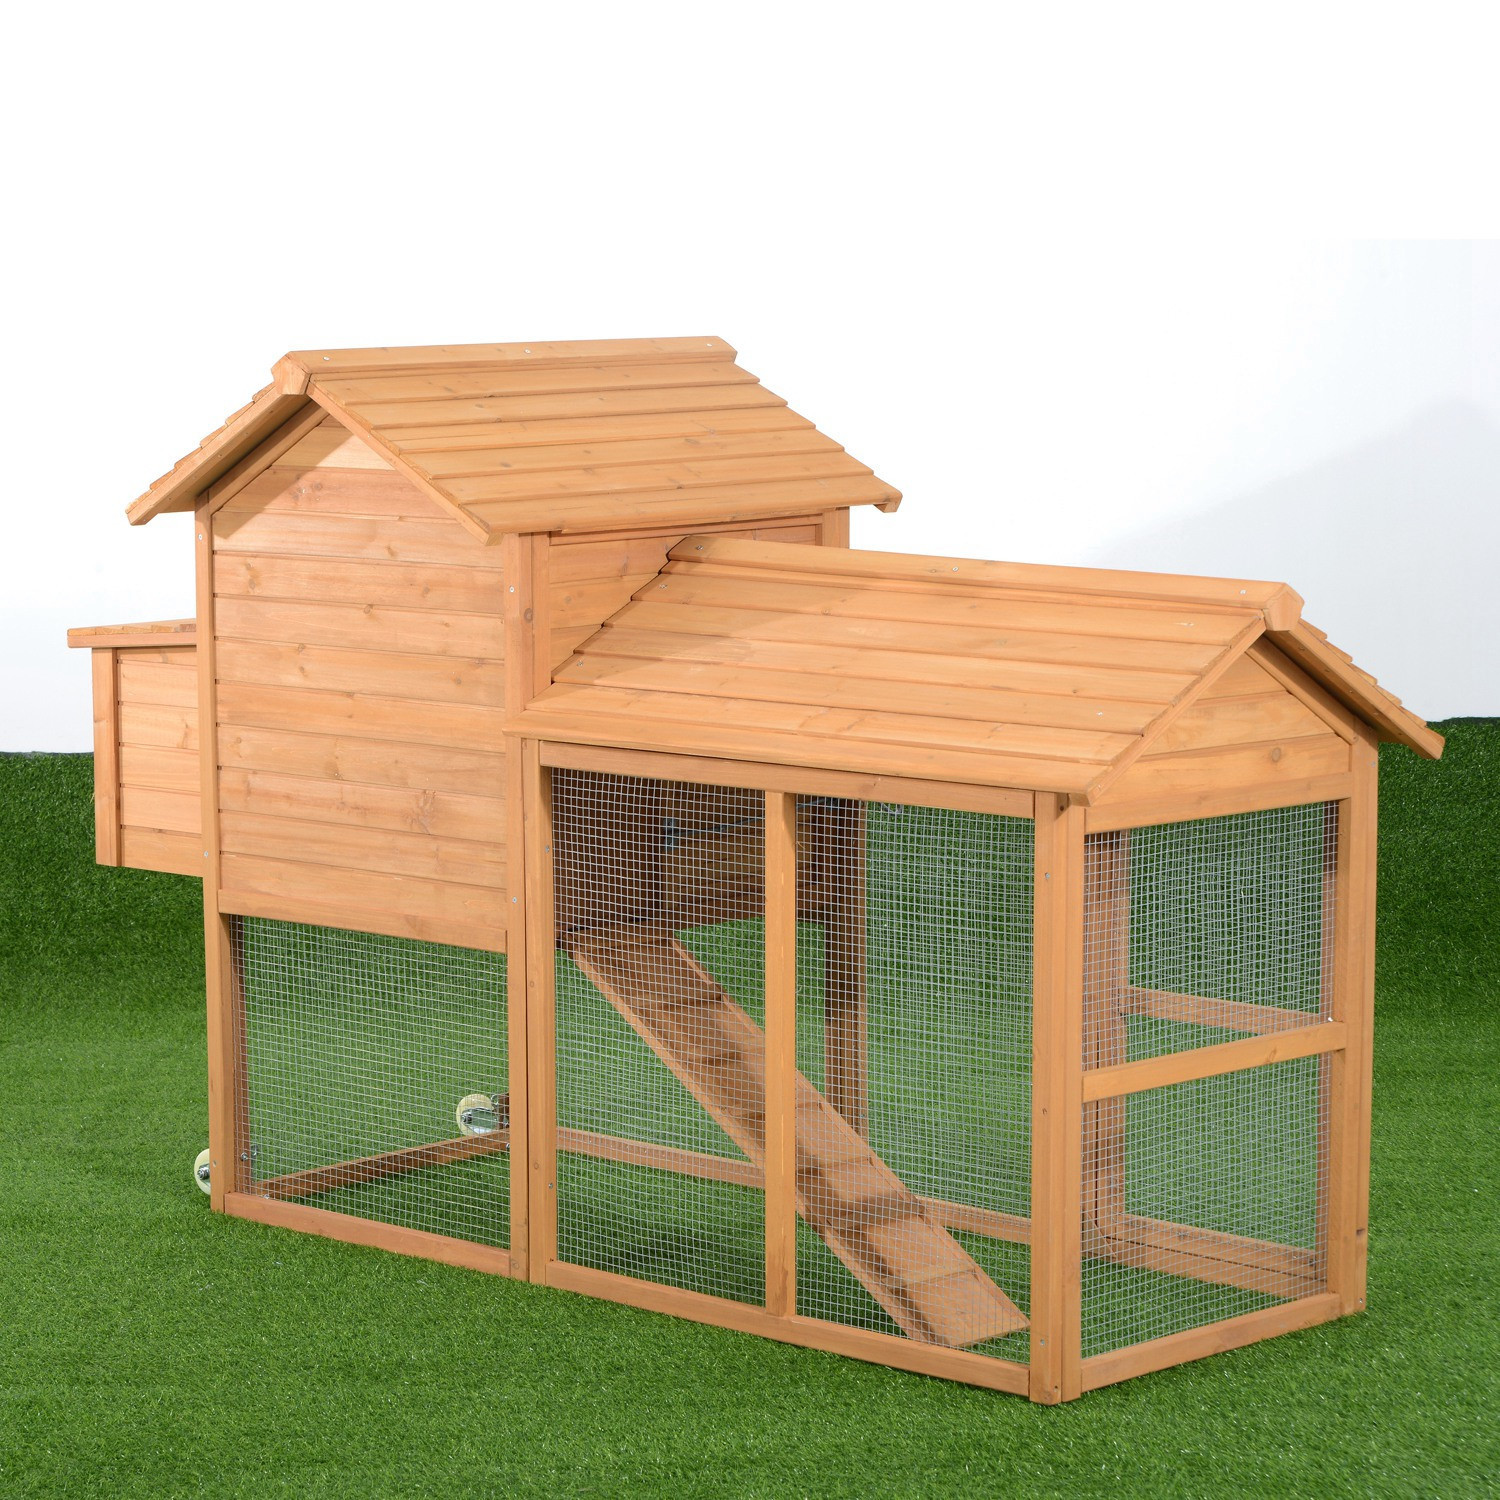 Best ideas about Backyard Chicken Coop . Save or Pin Aosom Deluxe Portable Backyard Chicken Coop with Nesting Now.